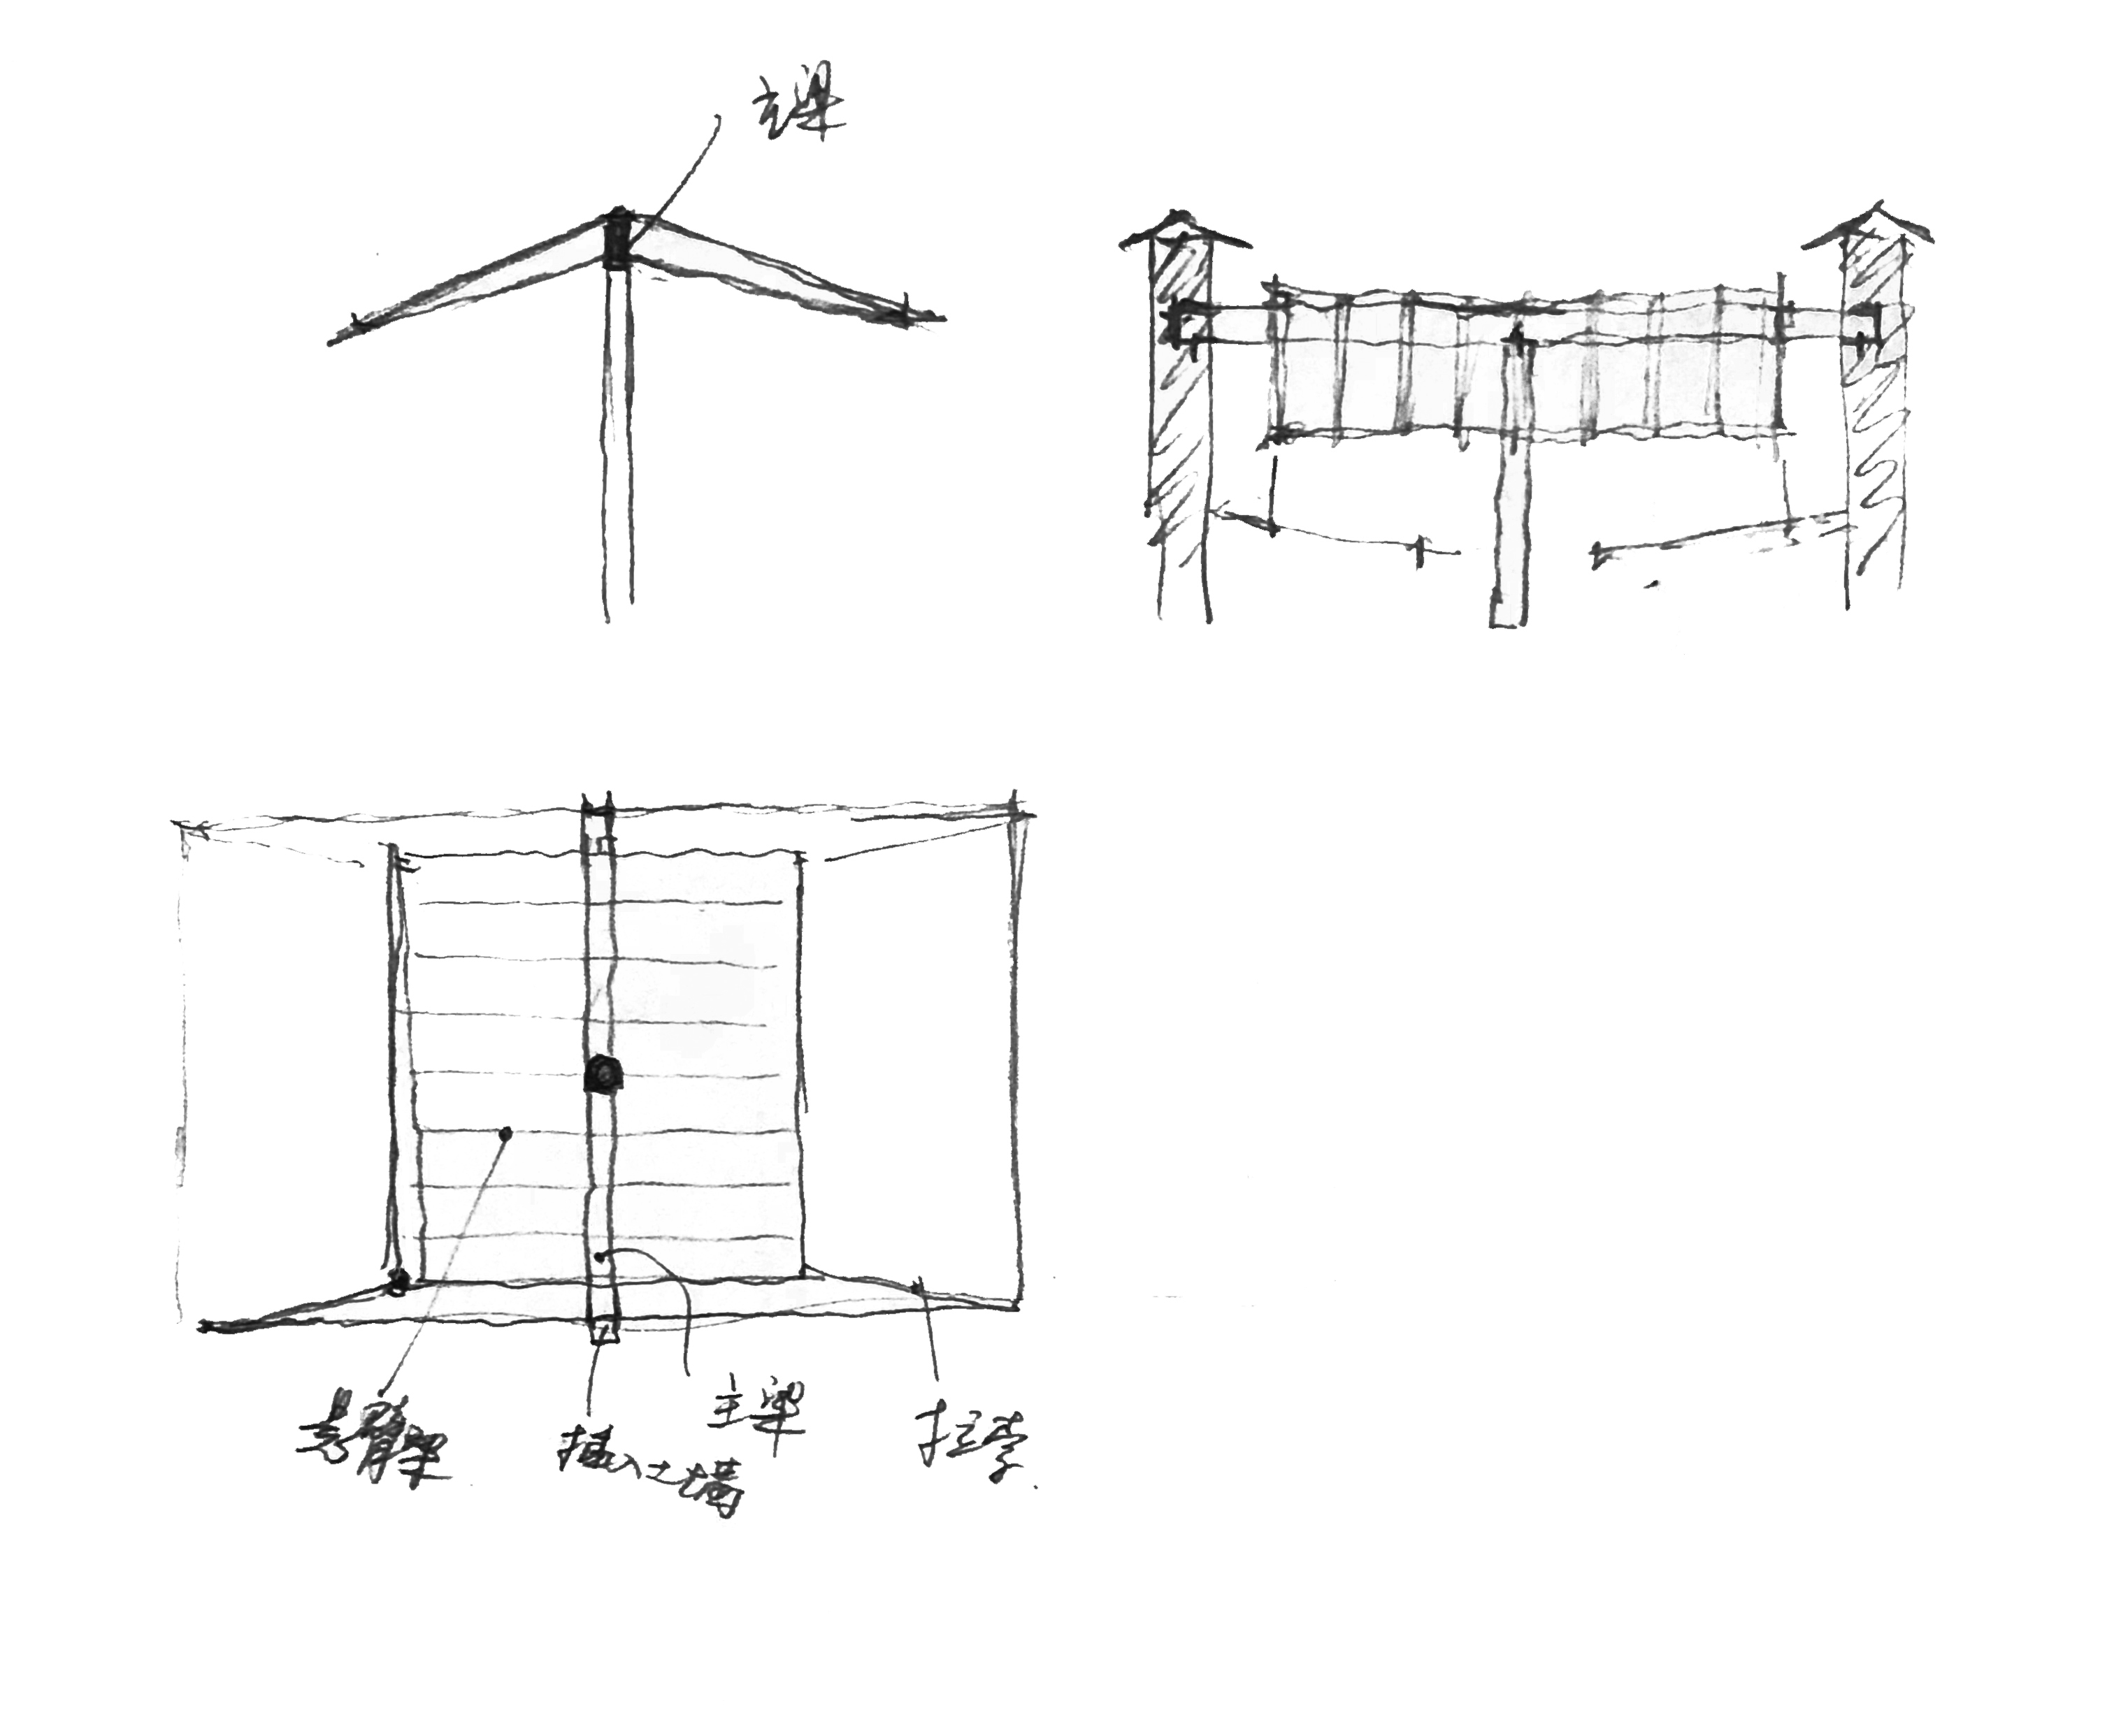 04 伞型屋顶草图 .华黎 Unbrella-shaped roof sketch .HUA Li.jpg